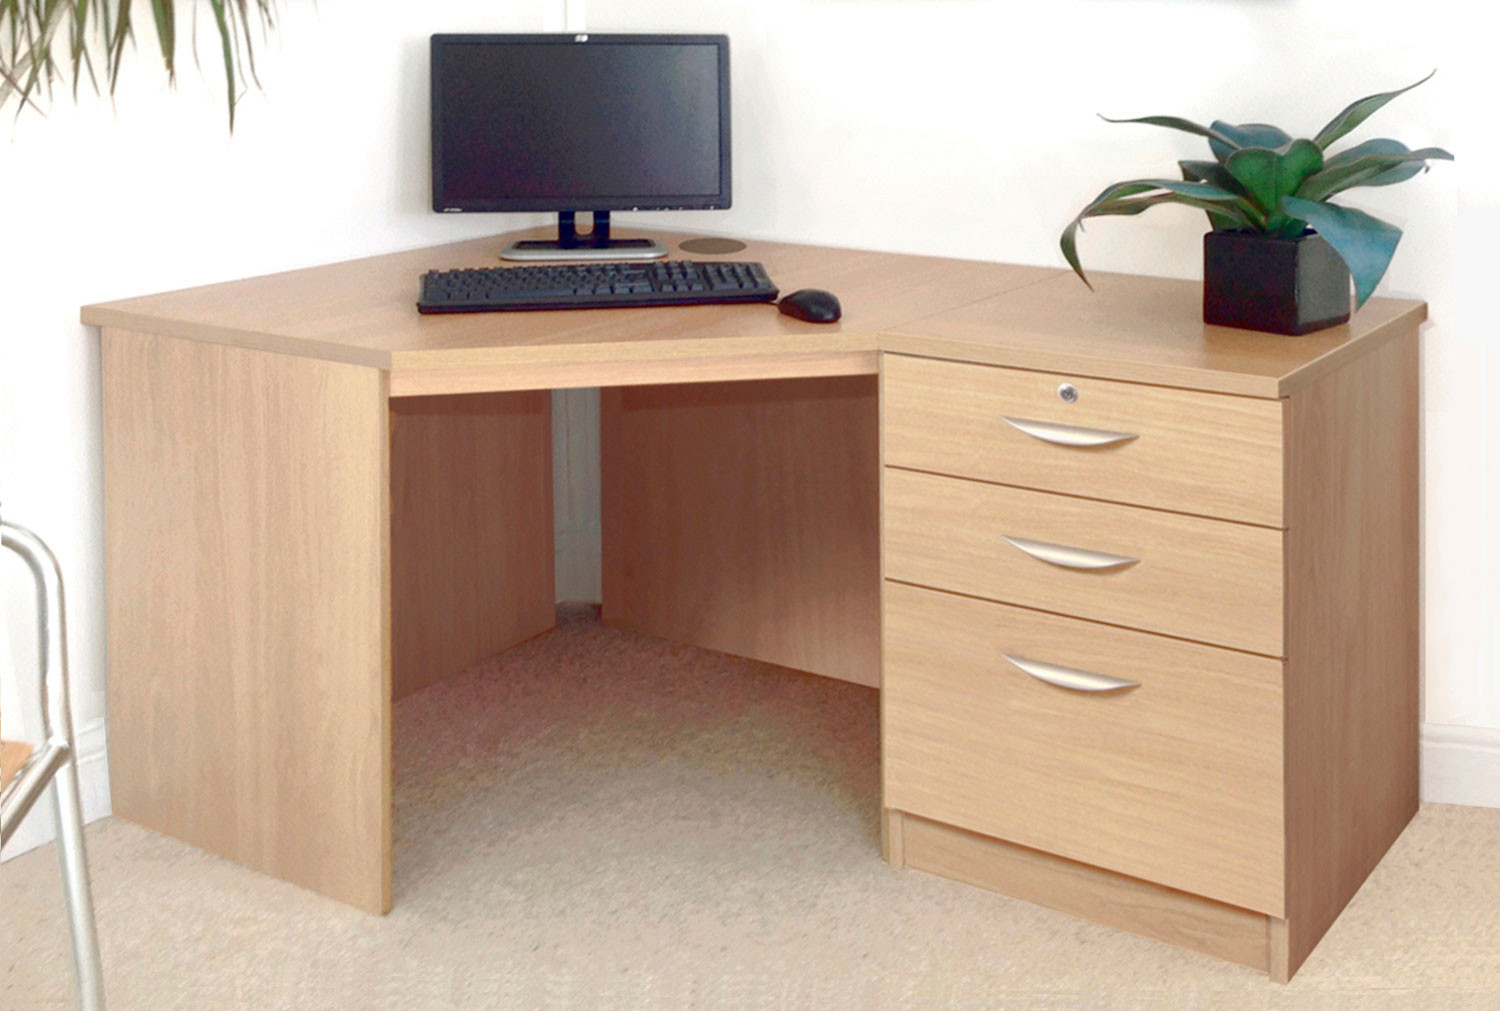 Small Office Corner Desk Set With 3 Drawers (Classic Oak)